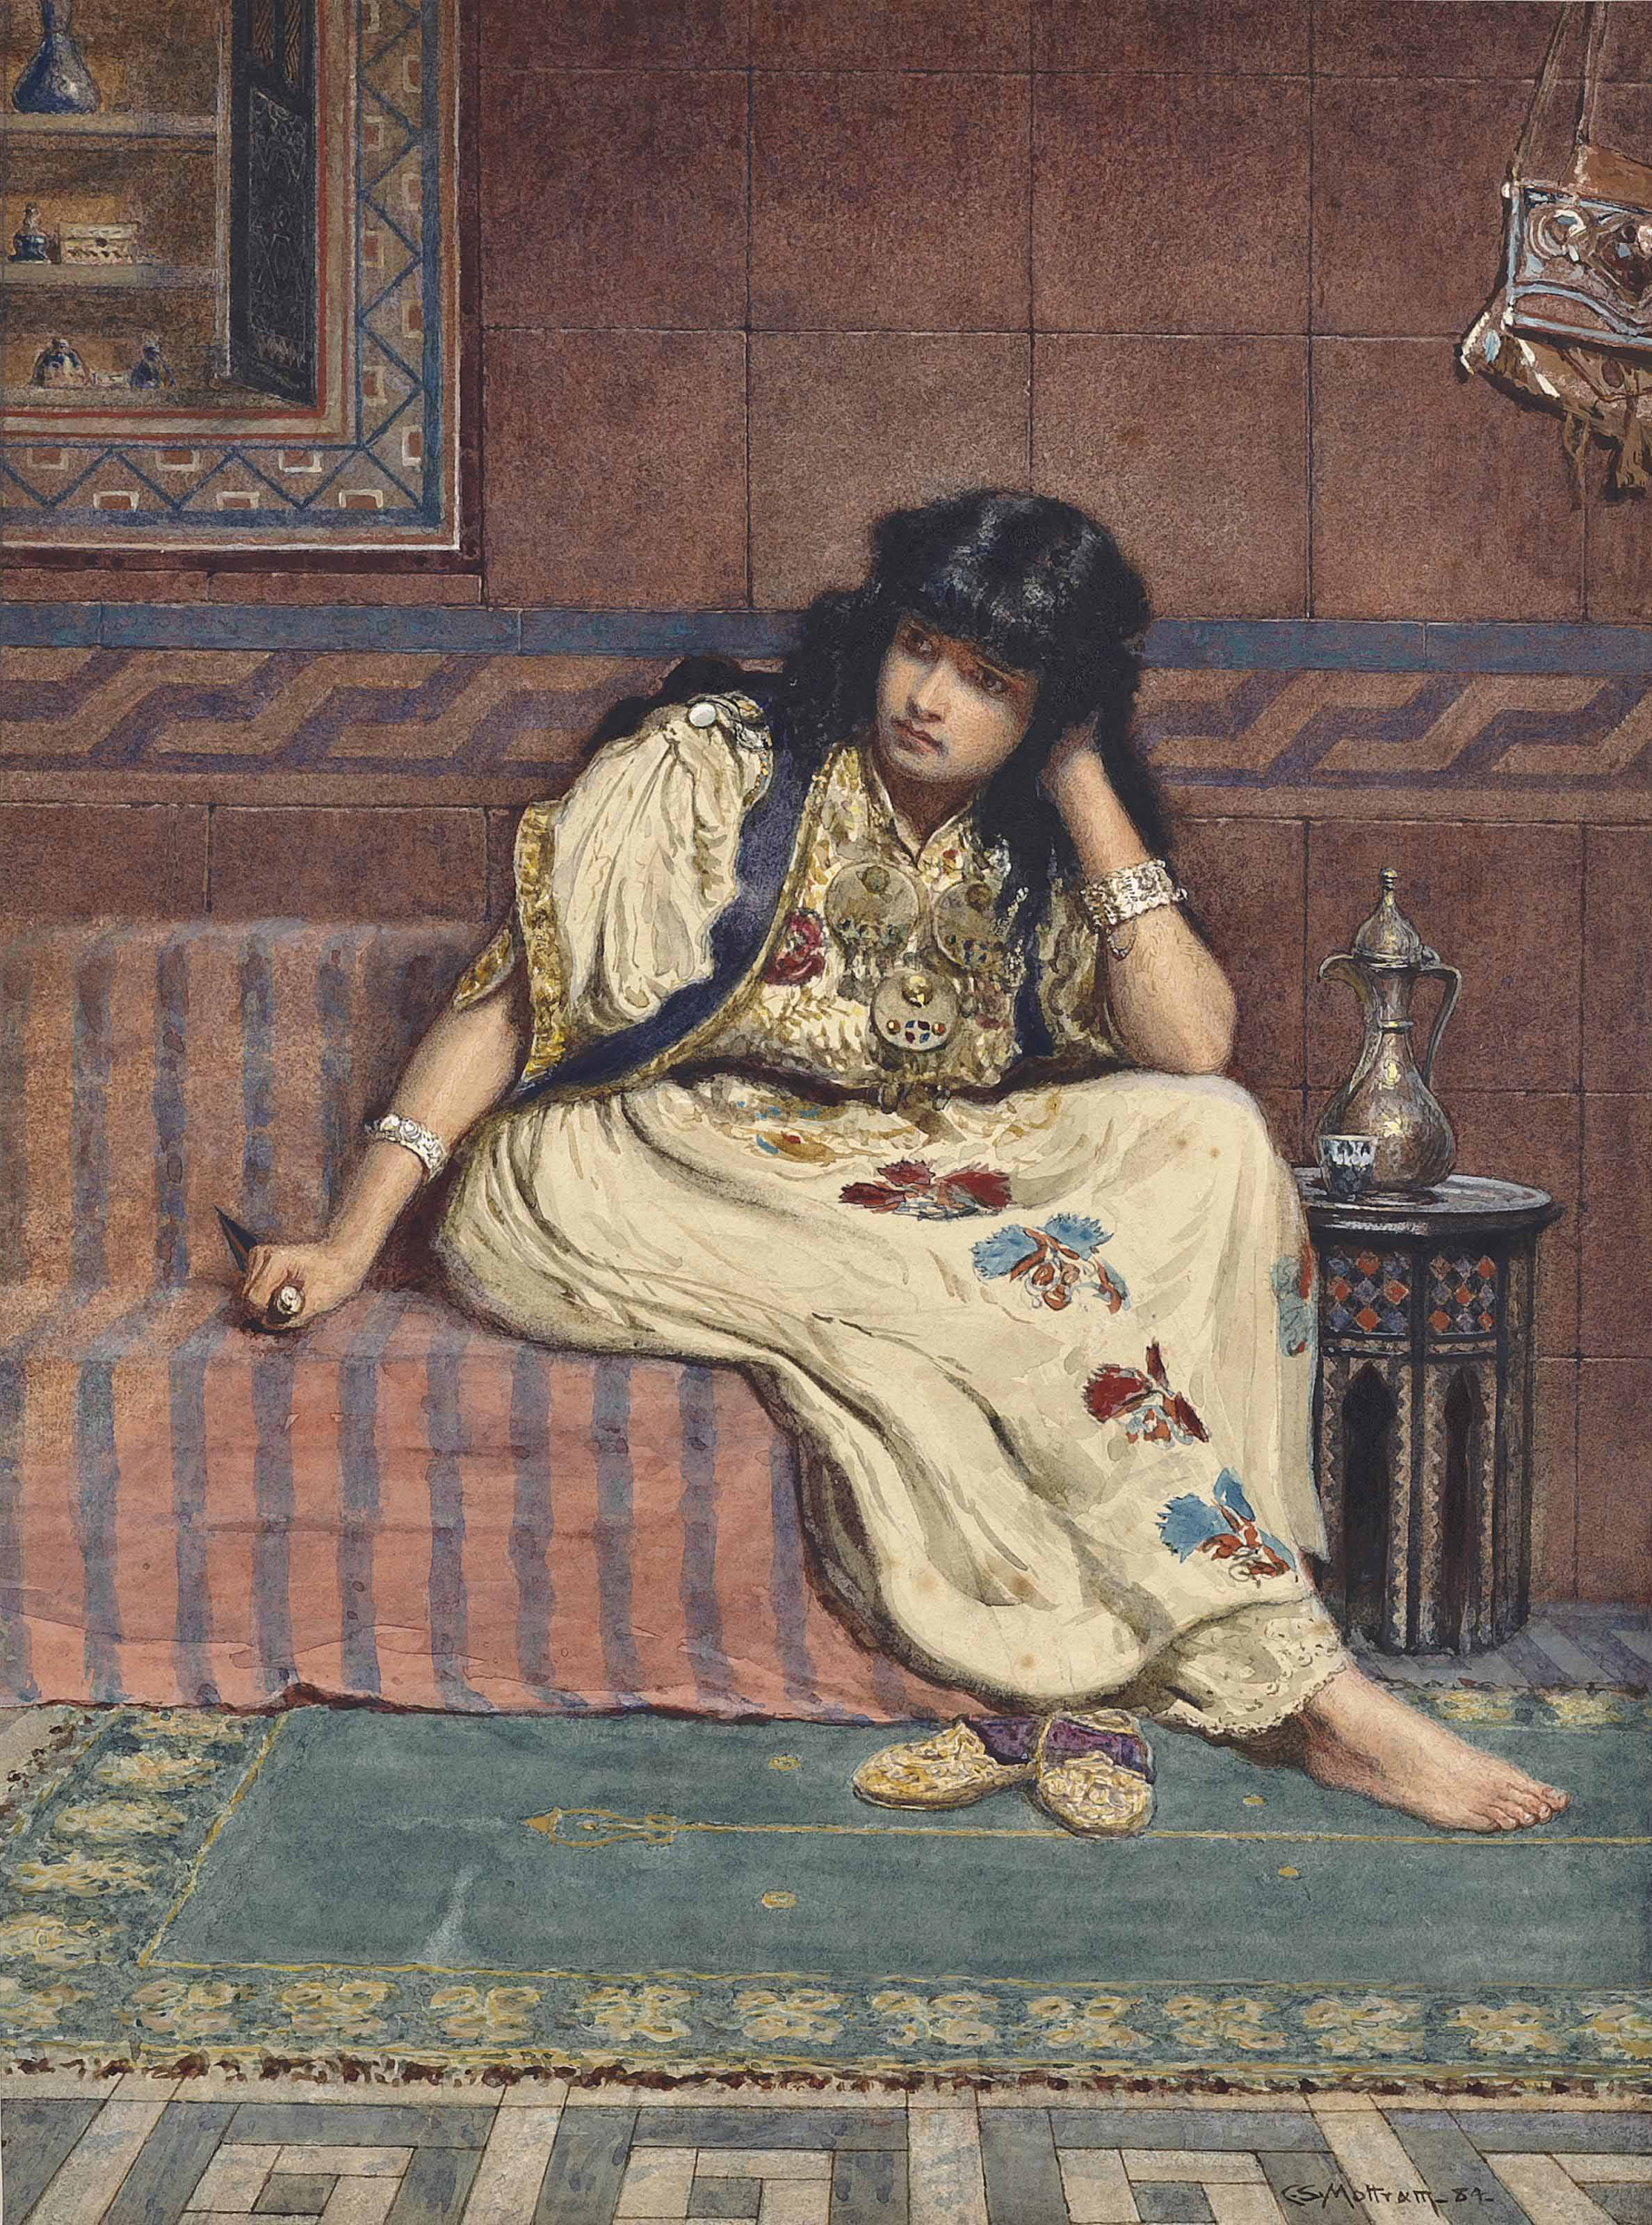 Arab girl seated in an interior, clutching a dagger